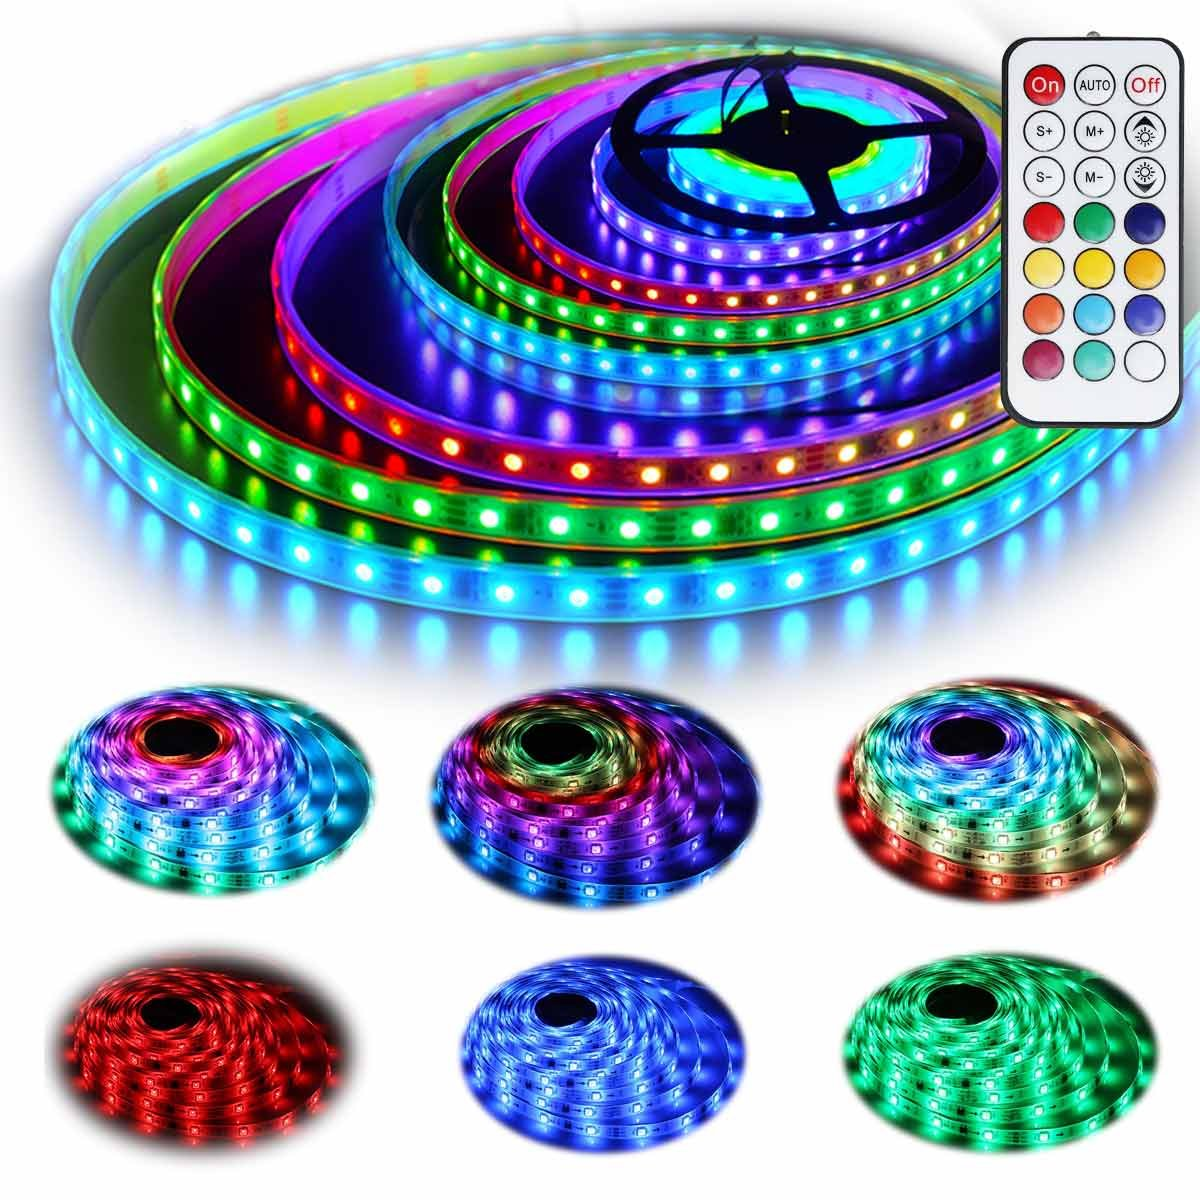 G GEEKEEP 12V RGB LED Strip Lights Kit, Geekeep Addressable Dream Color LED Lighting with Chasing Effect,Waterproof Neonpixel Led Flexible Tape Light with RF Remote Controller (5M/16.4ft)